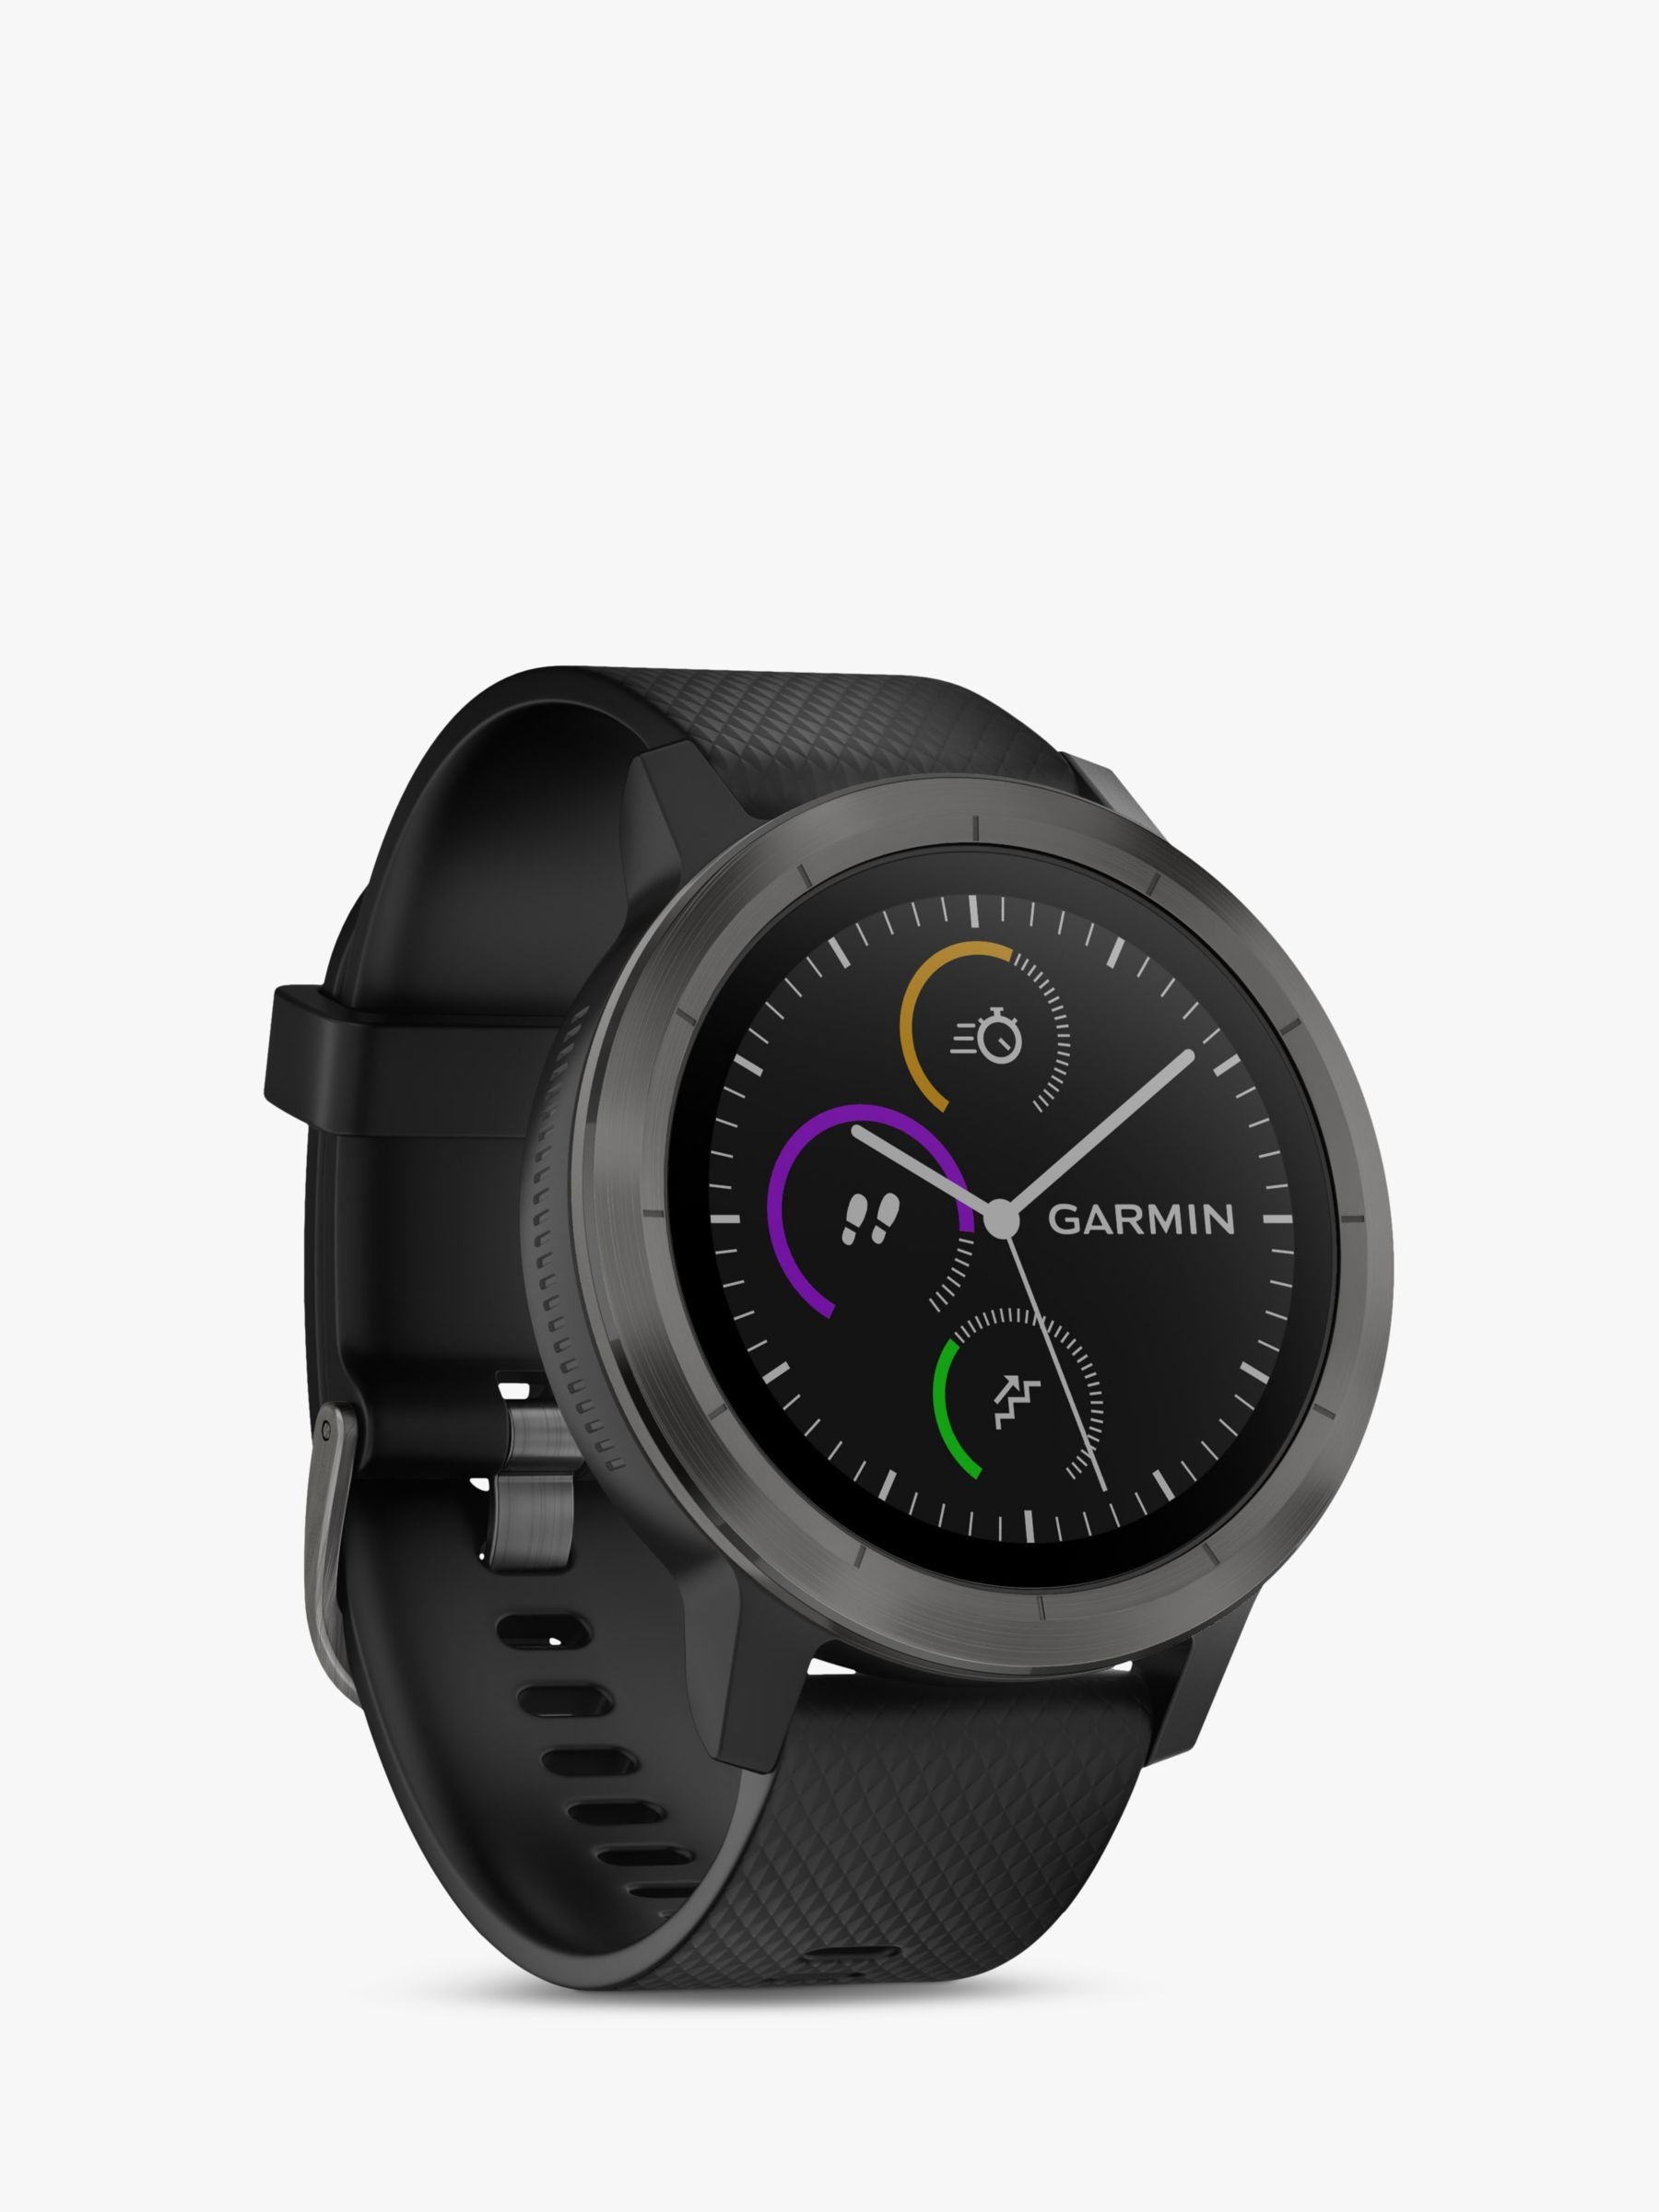 Garmin Garmin Vivoactive 3 GPS Smartwatch with Contactless Payment and HR, Black/Slate